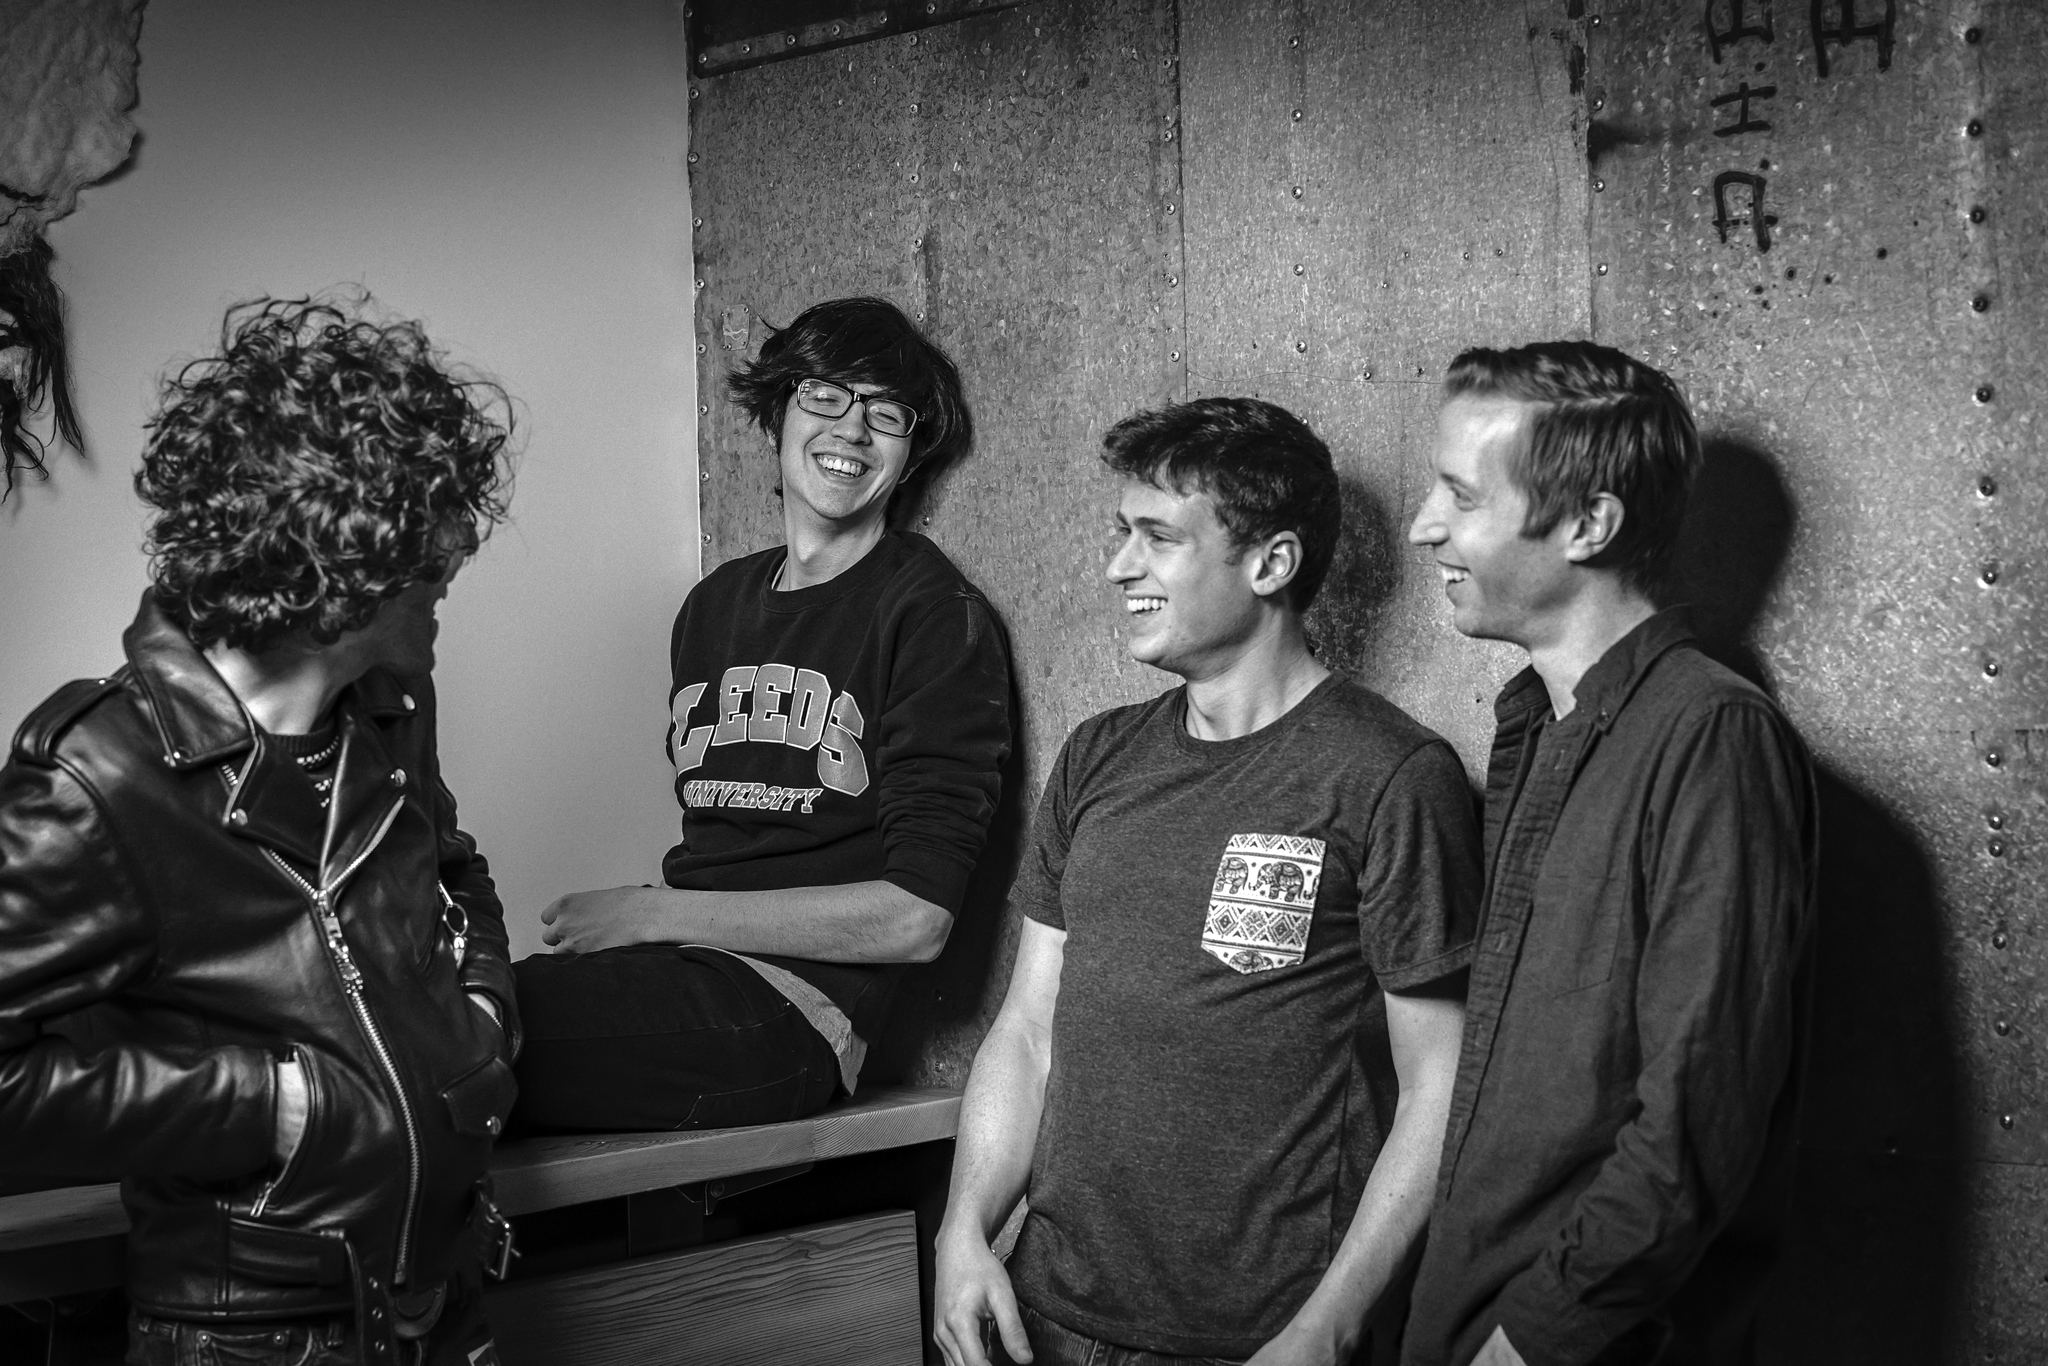 commit yrself completely | Car seat headrest, Car seats